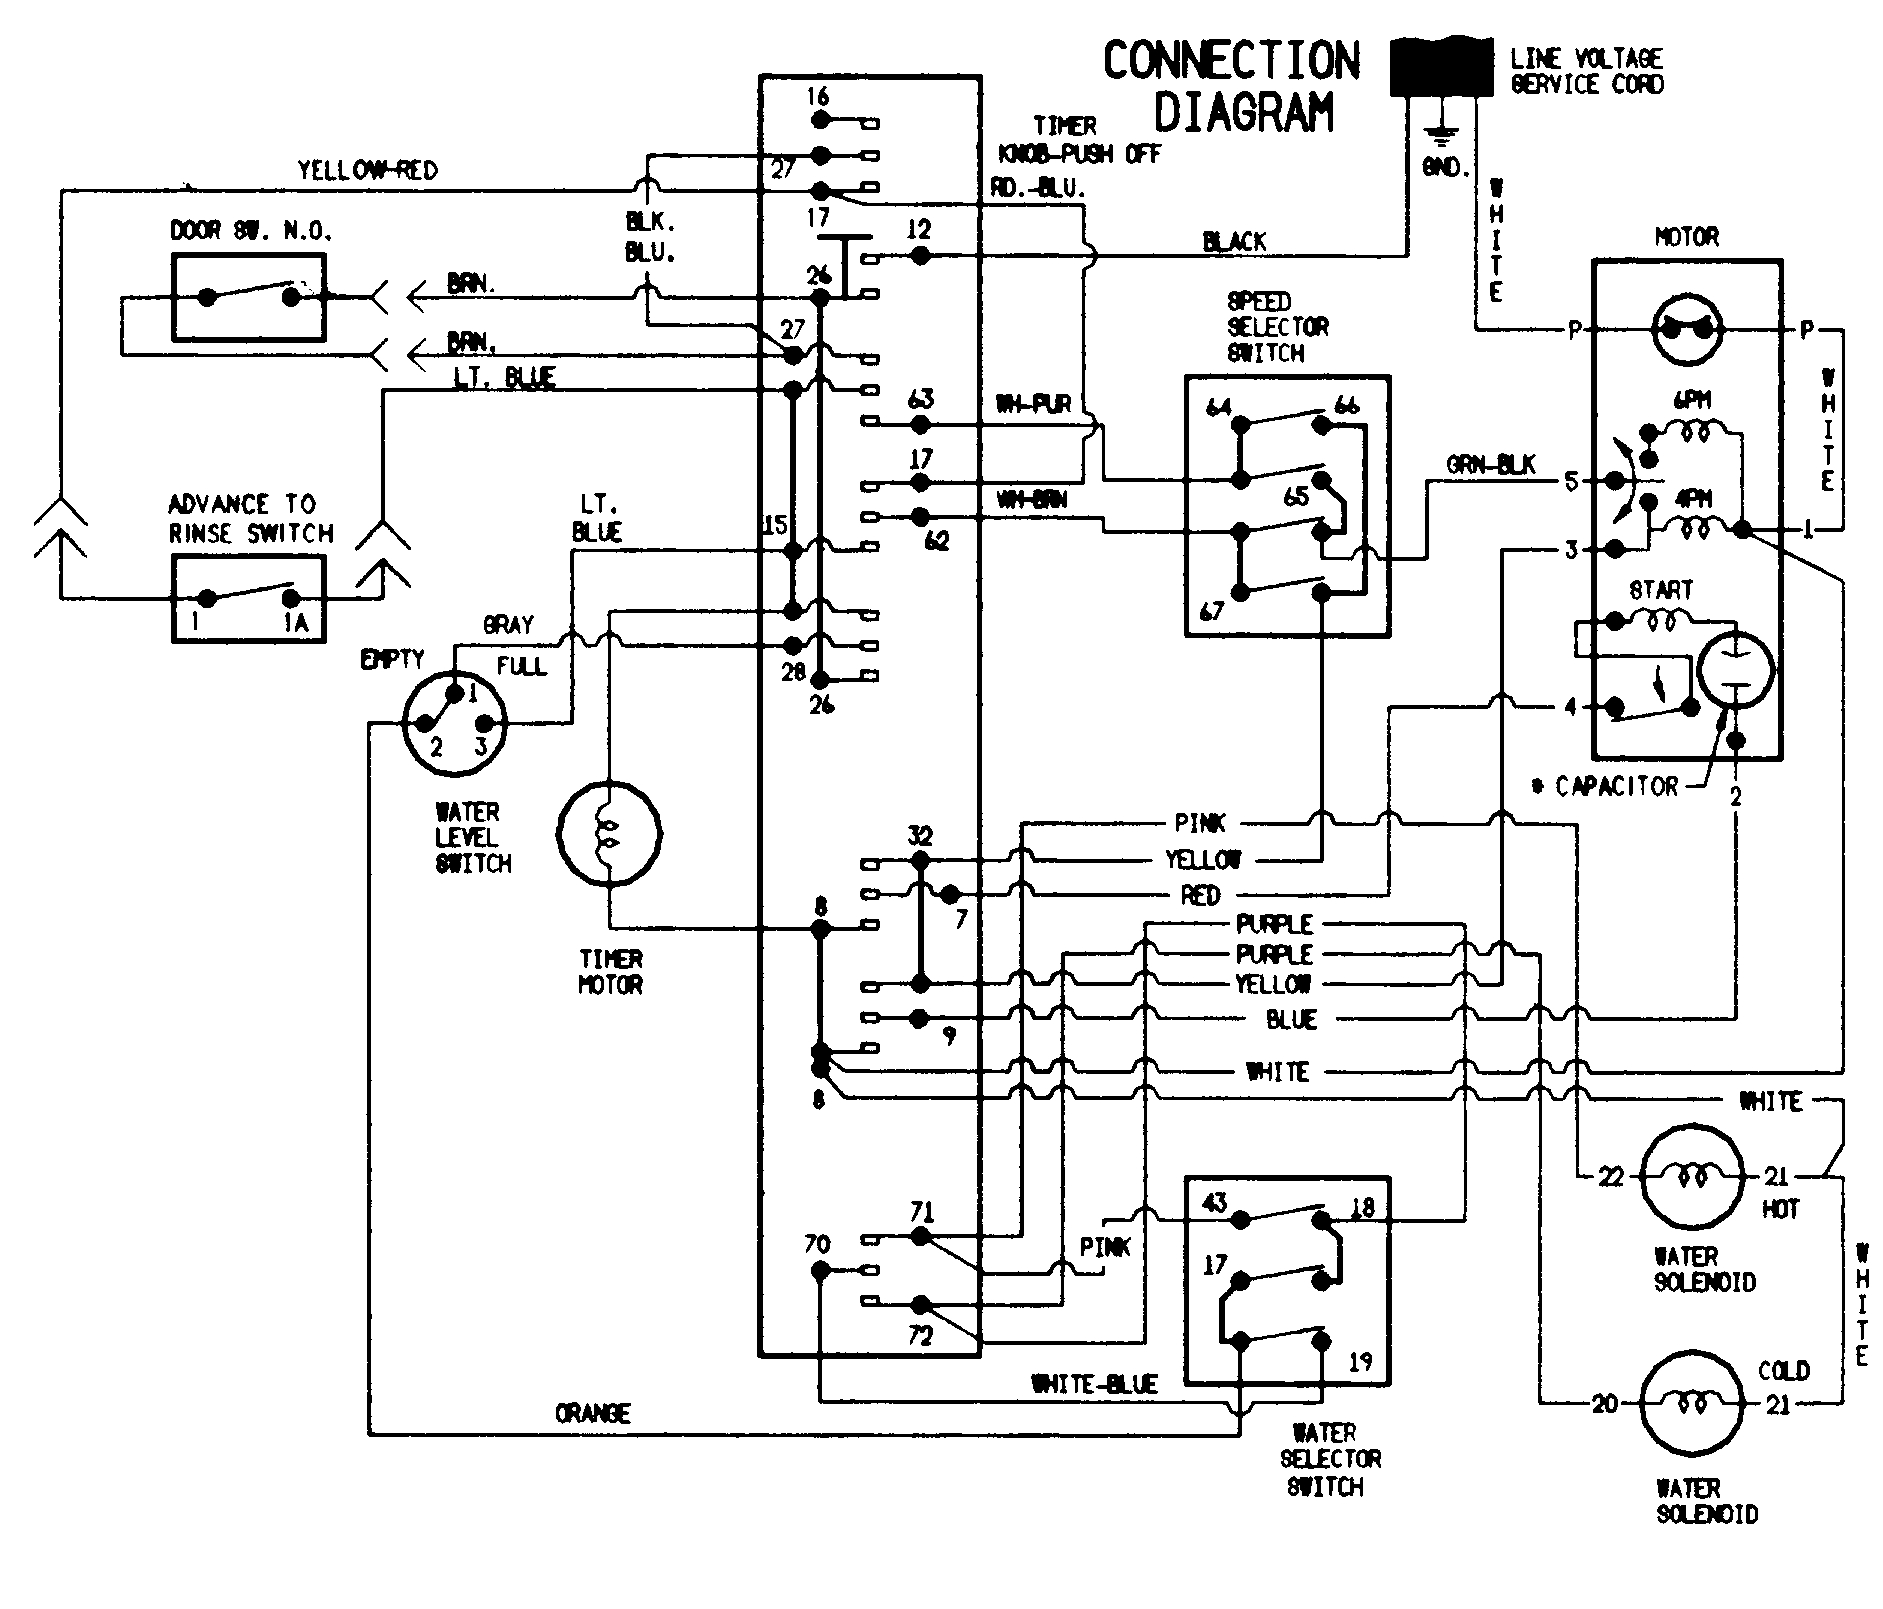 maytag washer wiring diagram Download-Maytag Washer Wiring Diagram Luxury Maytag Washer Parts Model Pav2000aww 18-i